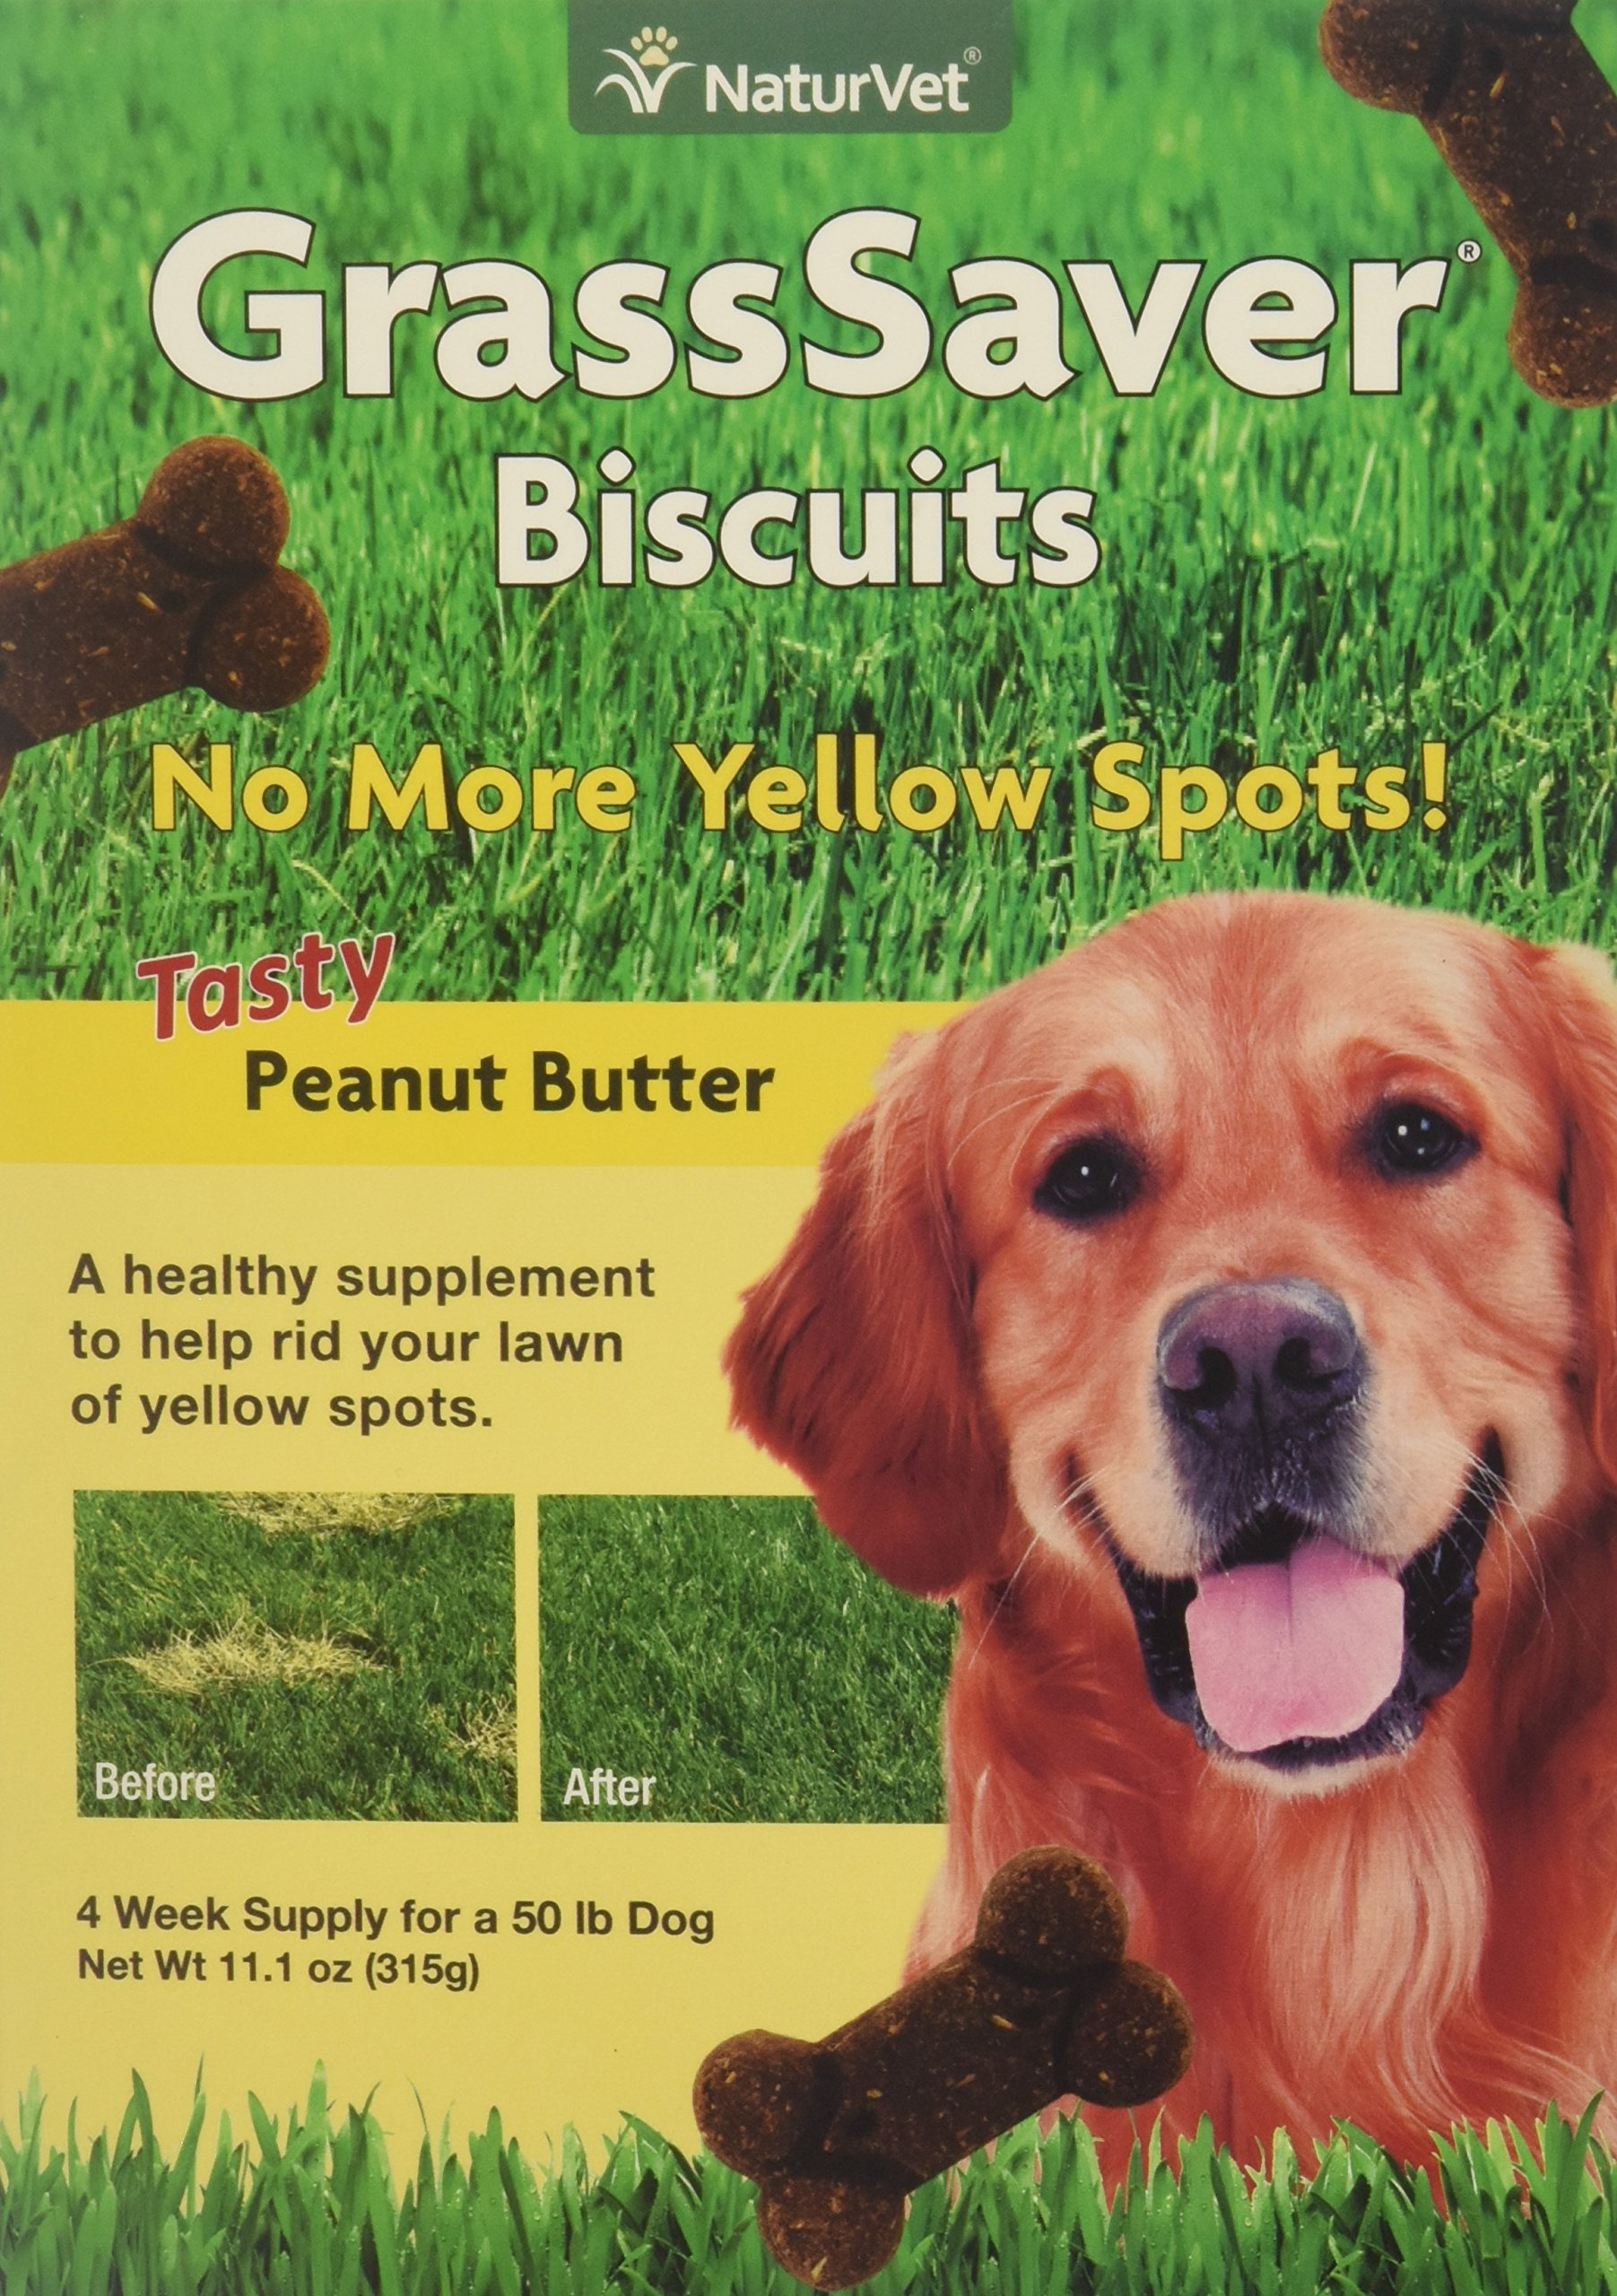 NaturVet GrassSaver Biscuits Peanut Butter Flavor for Dogs, 11 oz Biscuits, Made in USA